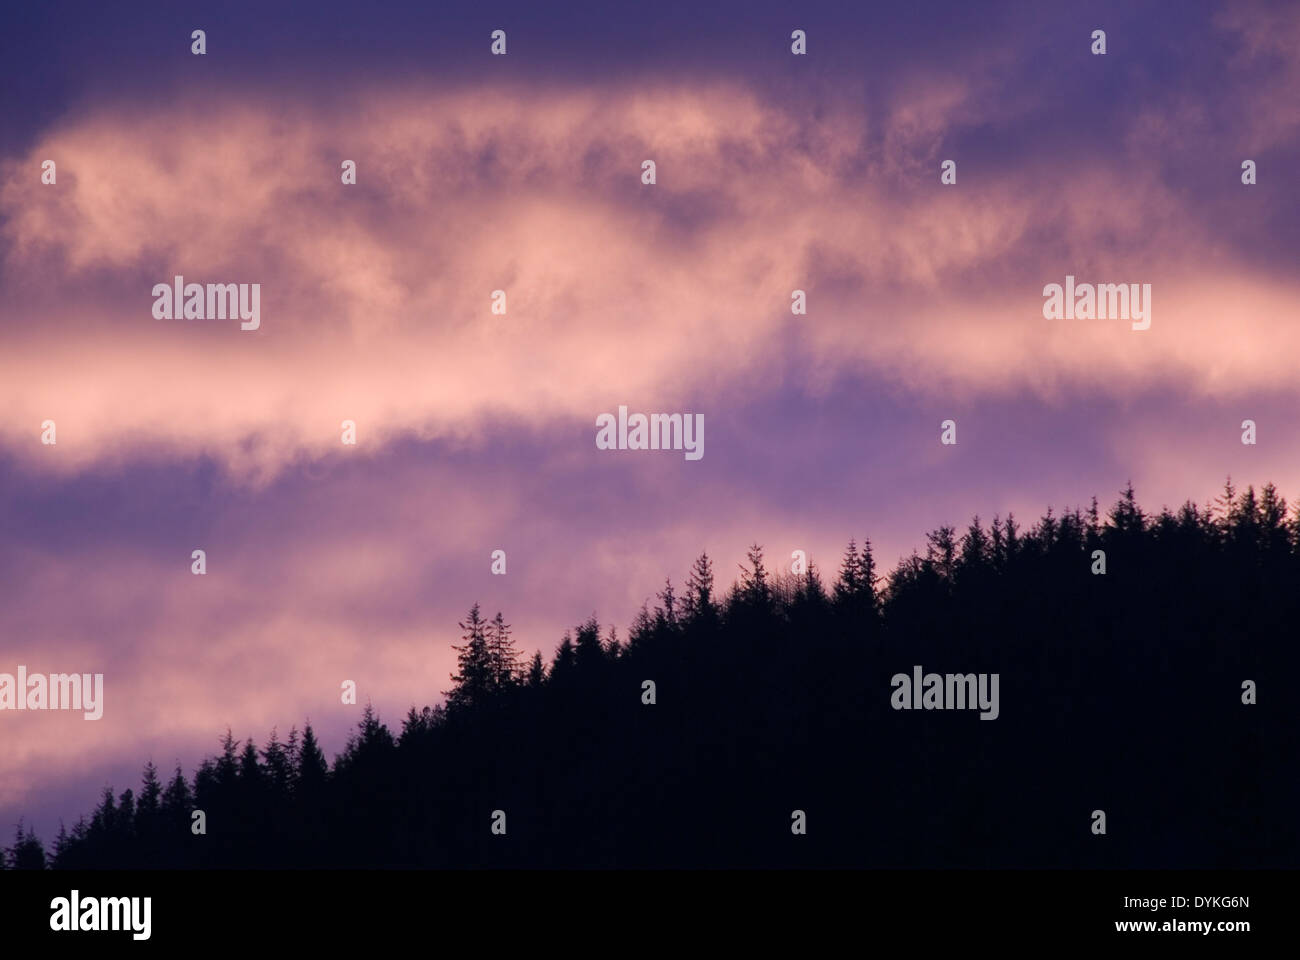 Dawn cloud skyscape behind silhouette of a fir tree forested hill, Snowdonia, Wales, UK - Stock Image